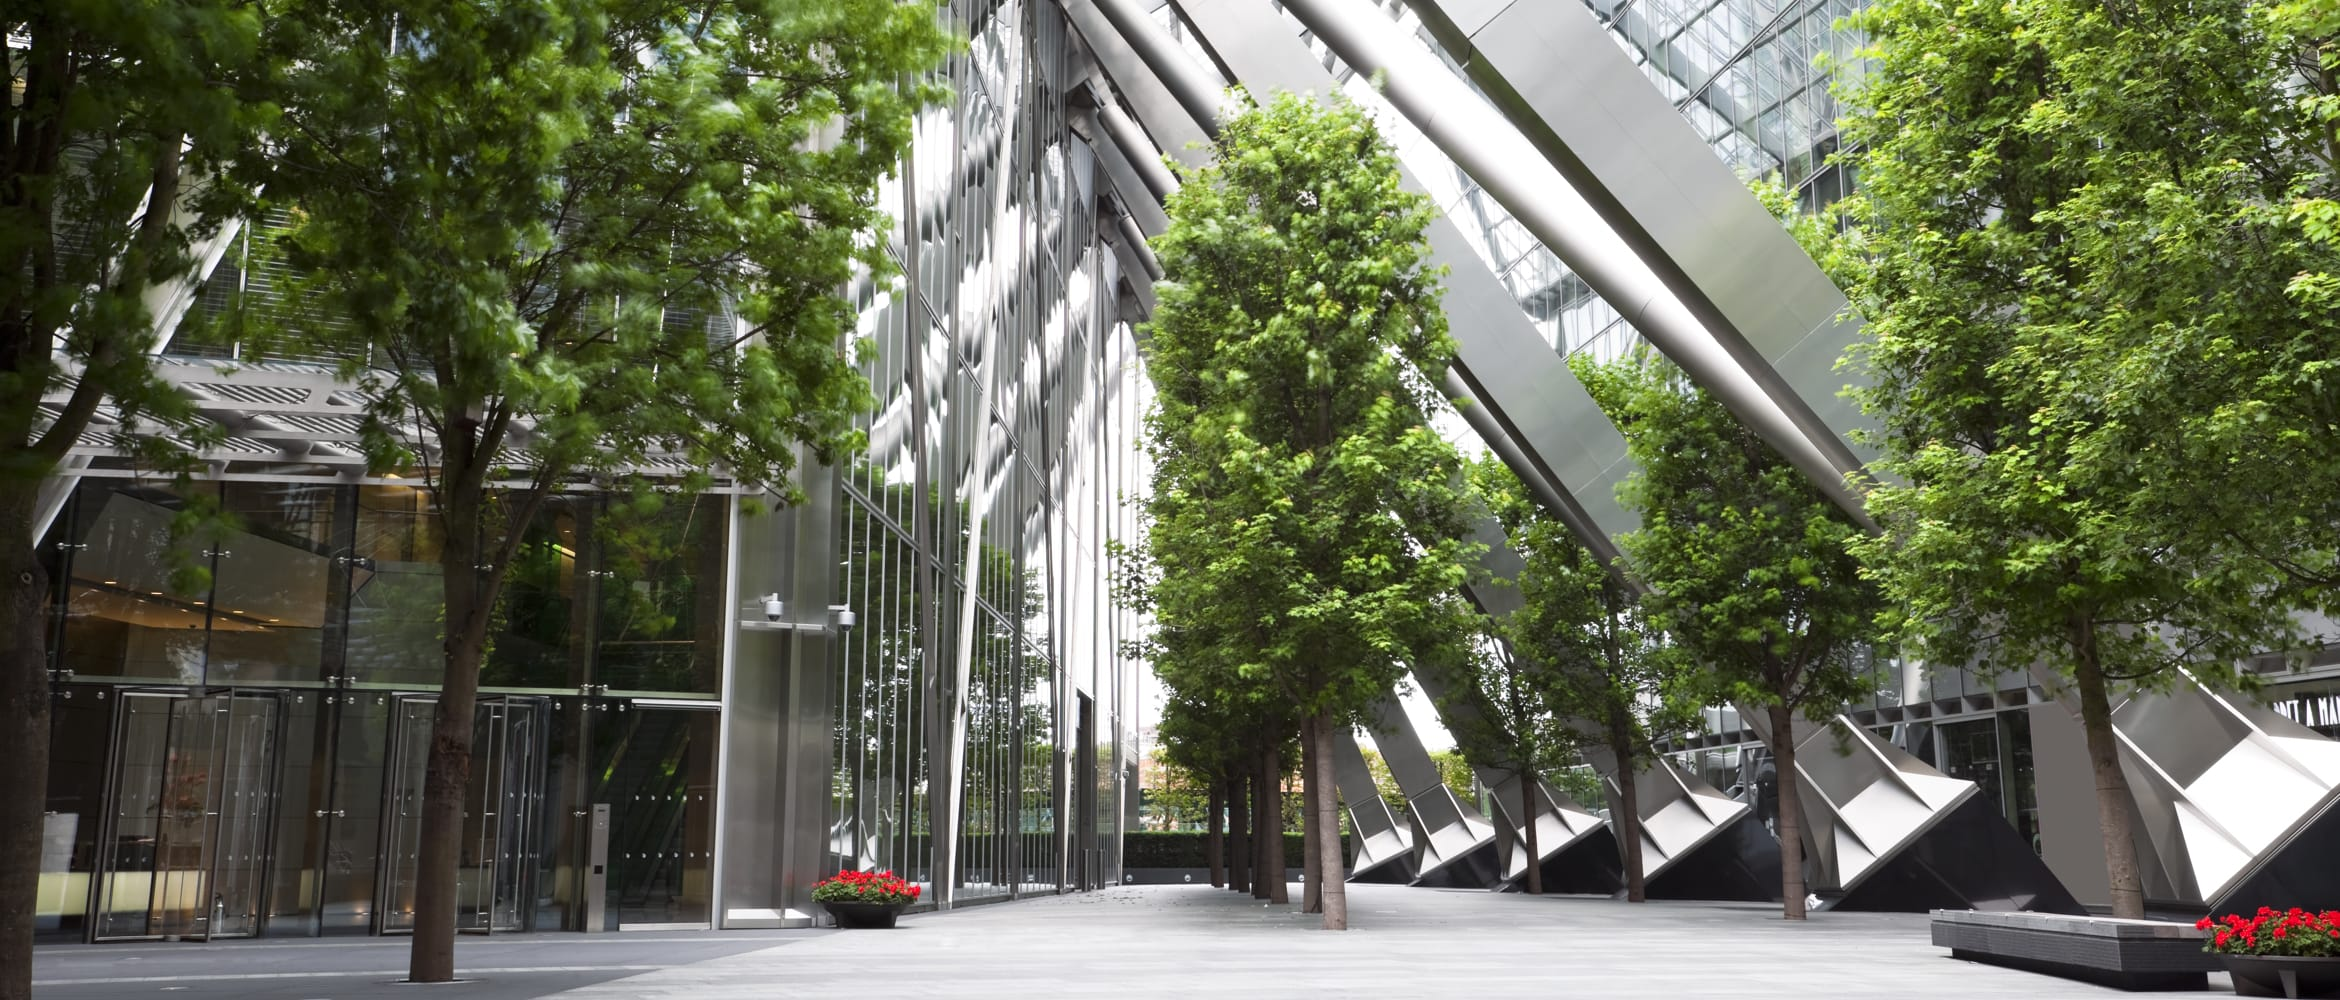 Trees lining an undercover glass and steel structure in a public area of a commercial office space